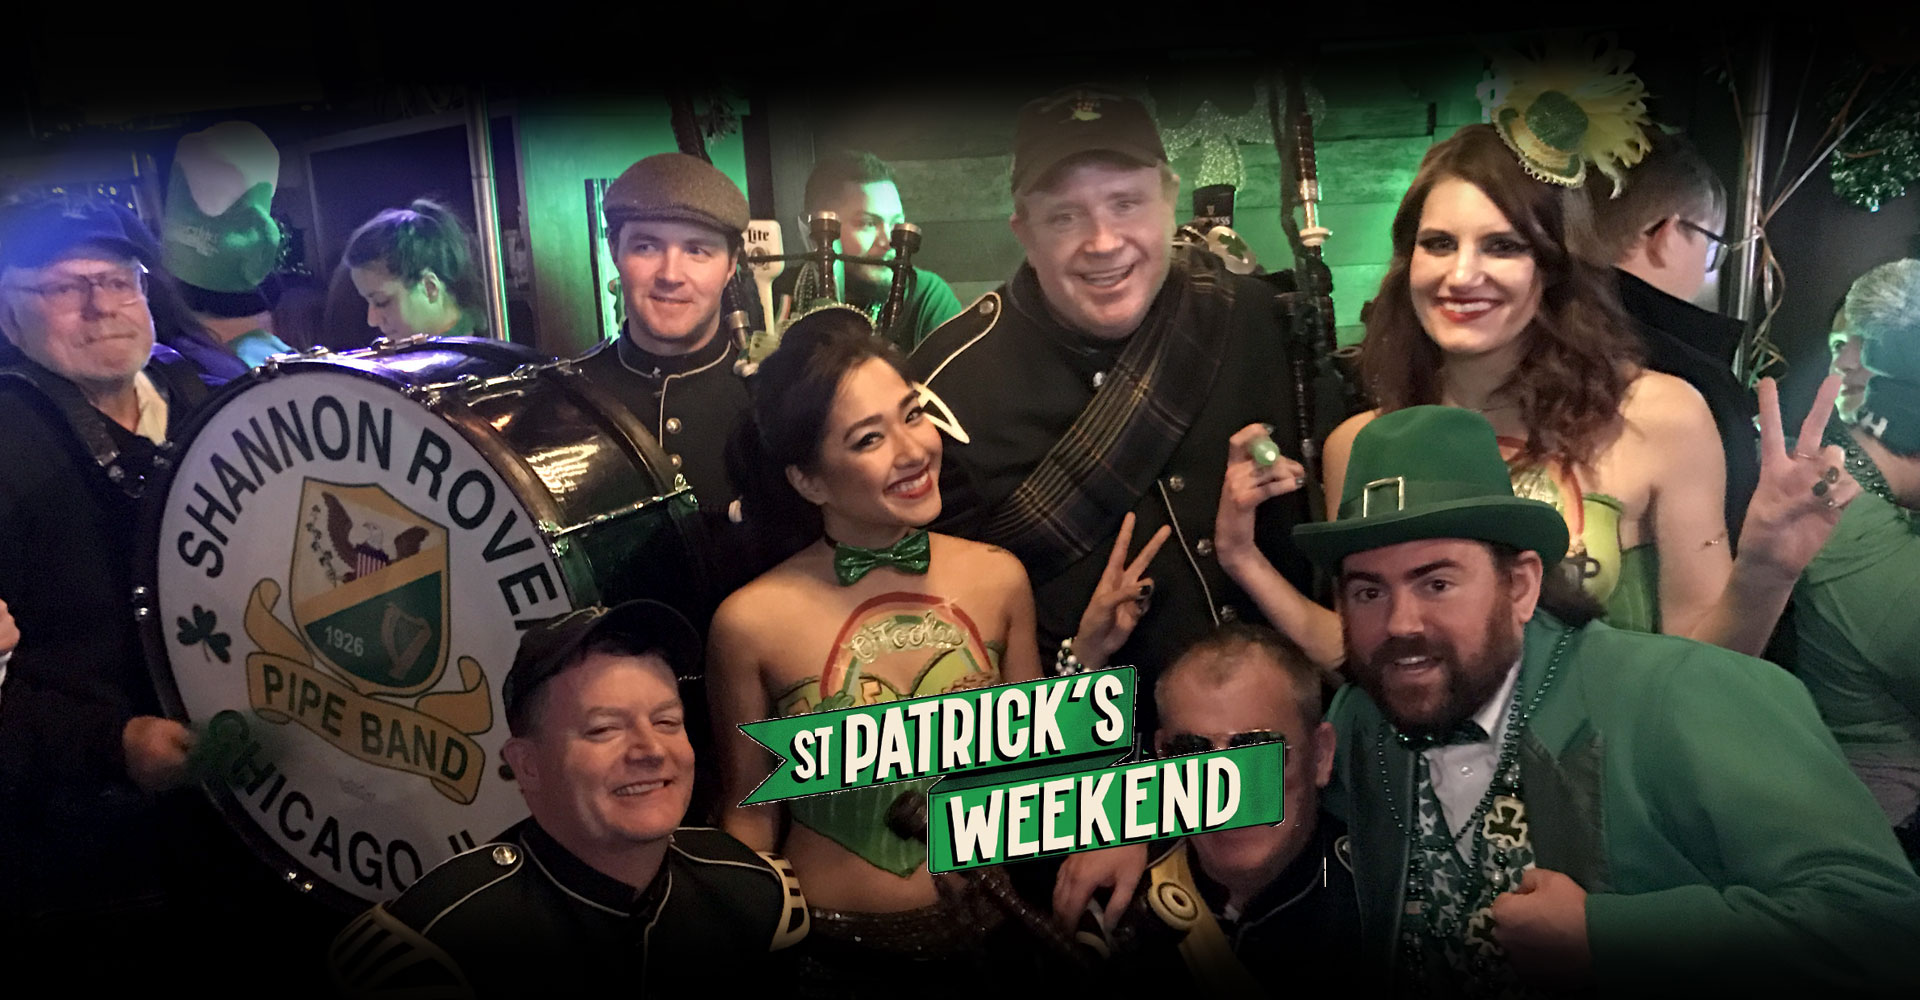 Chicago's Best St. Patrick's Day Party! Celebrate with us!